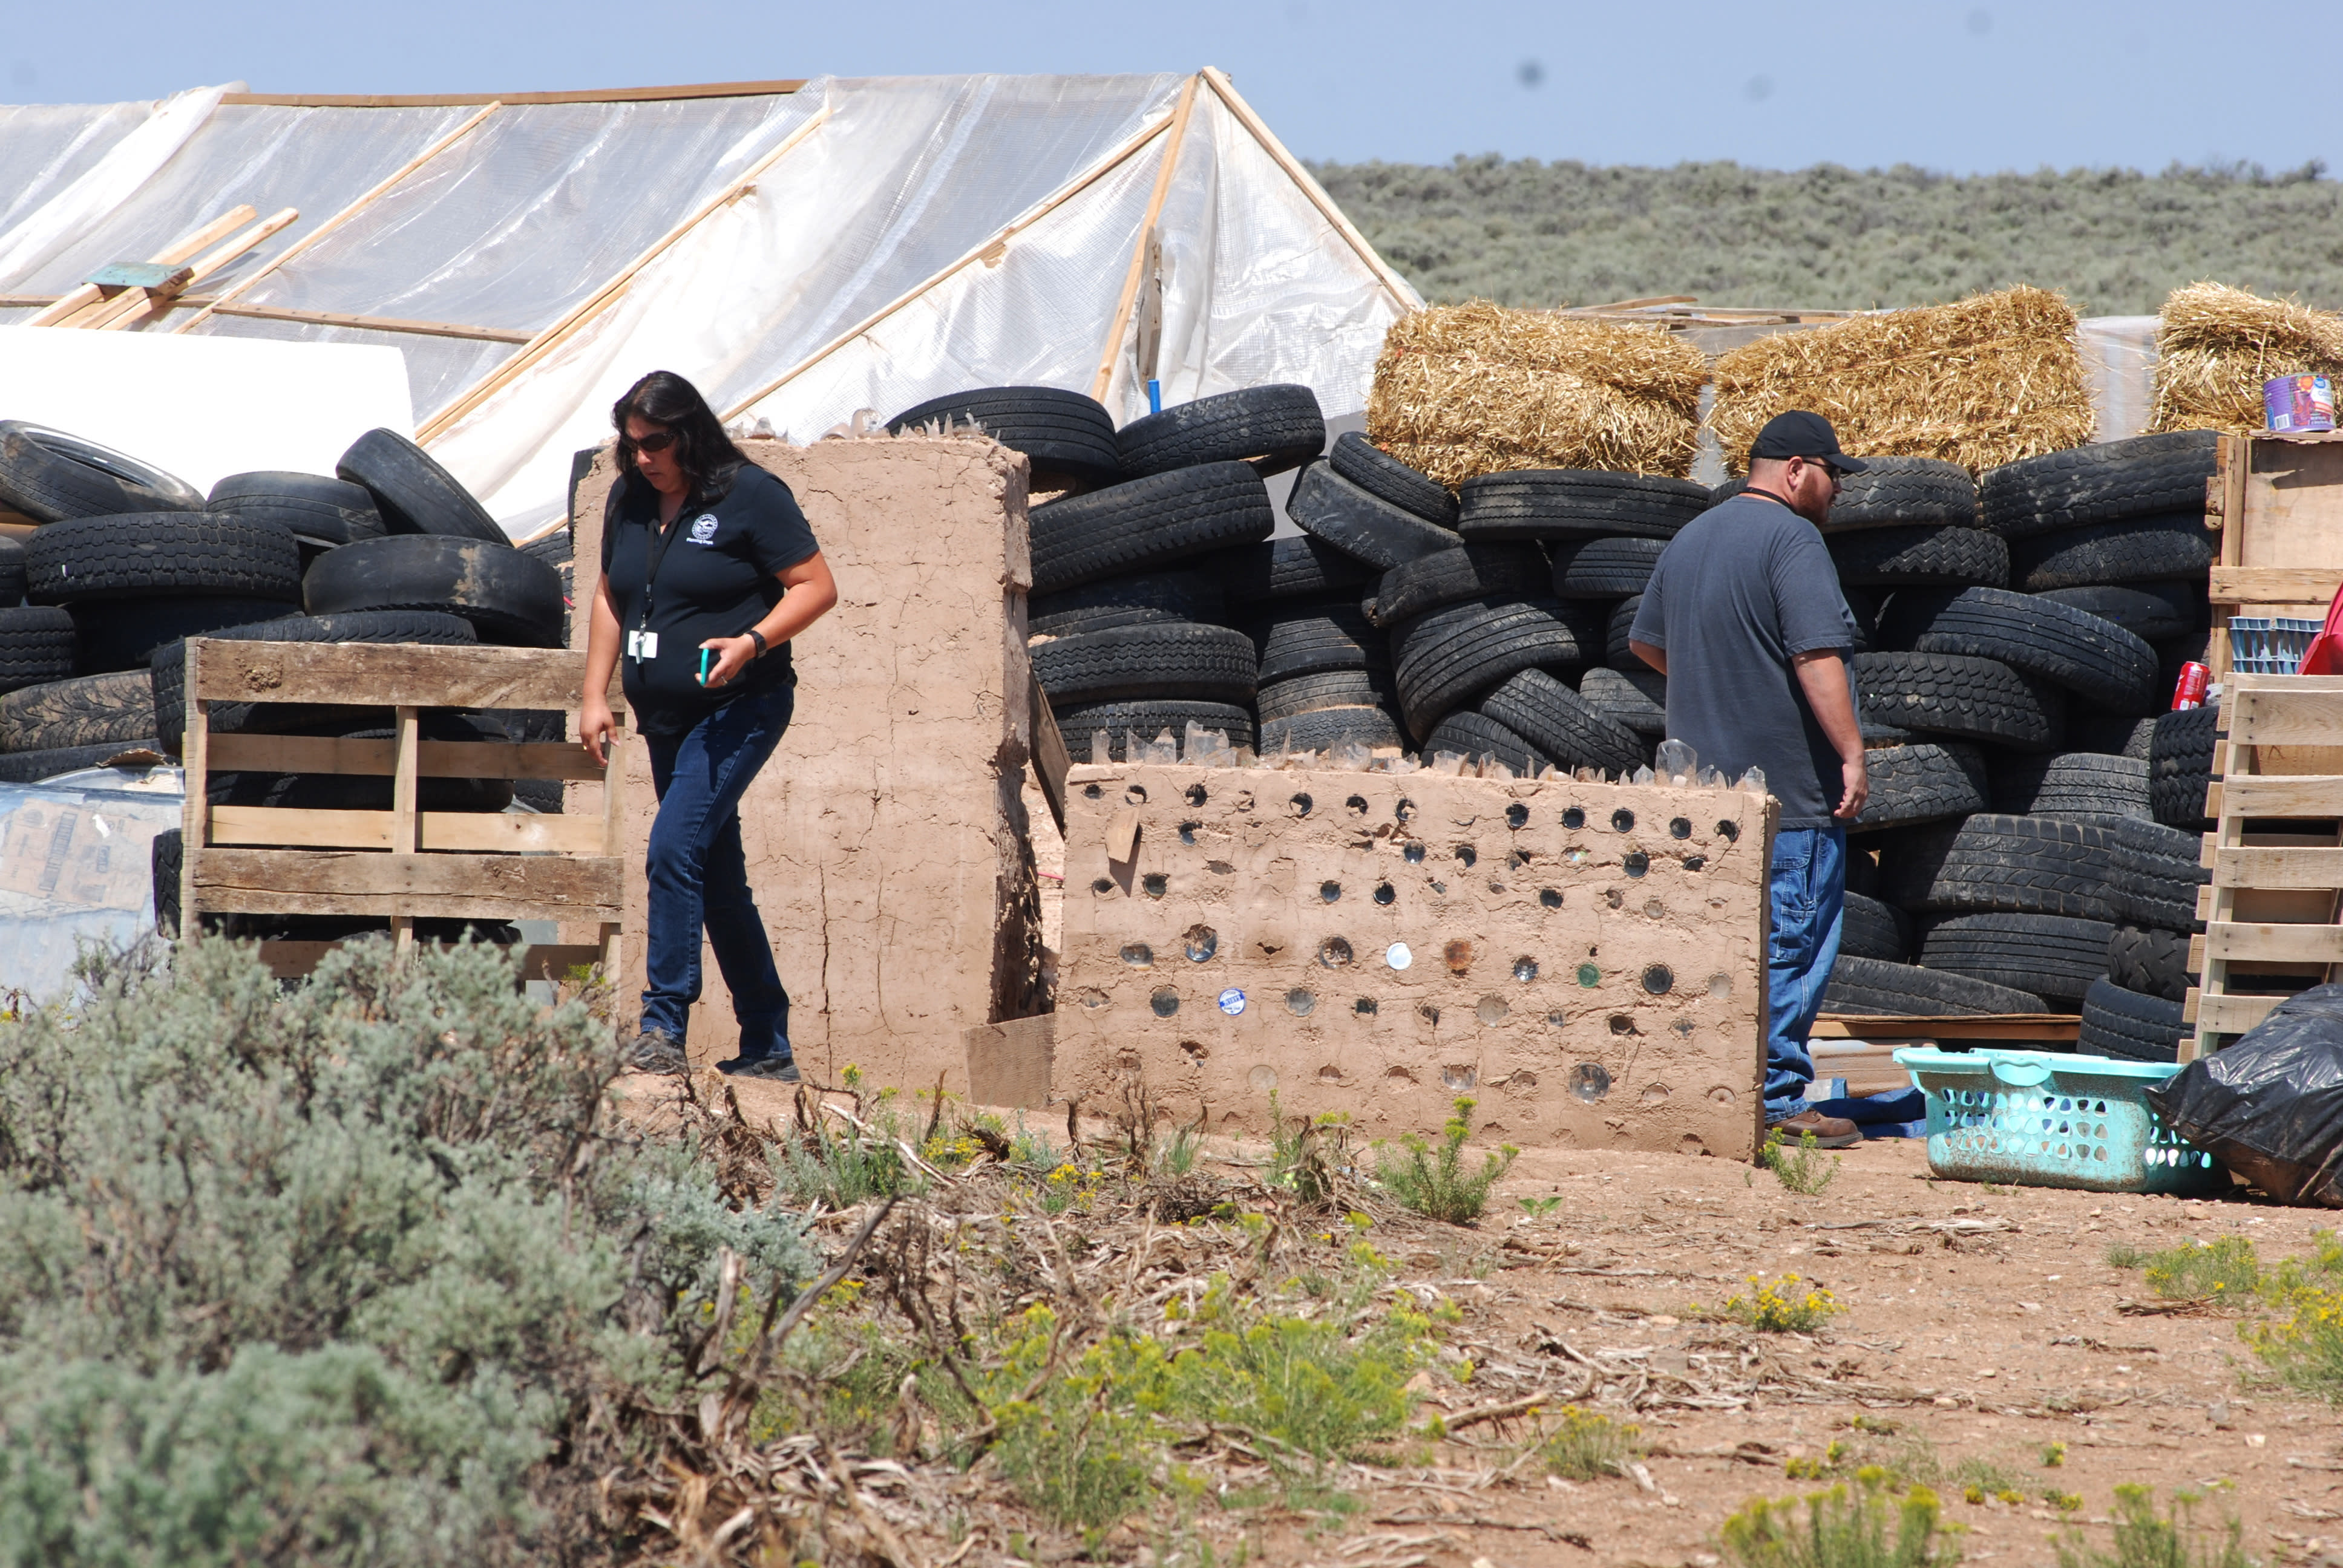 CORRECTS BYLINE TO MORGAN LEE INSTEAD OF LEE MORGAN - Taos County Planning Department officials Rachel Romero, left, and Eric Montoya survey property conditions at a disheveled living compound at Amalia, N.M., on Tuesday, Aug. 7, 2018. A New Mexico sheriff said searchers have found the remains of a boy at the makeshift compound that was raided in search of a missing Georgia child. (AP Photo/Morgan Lee)